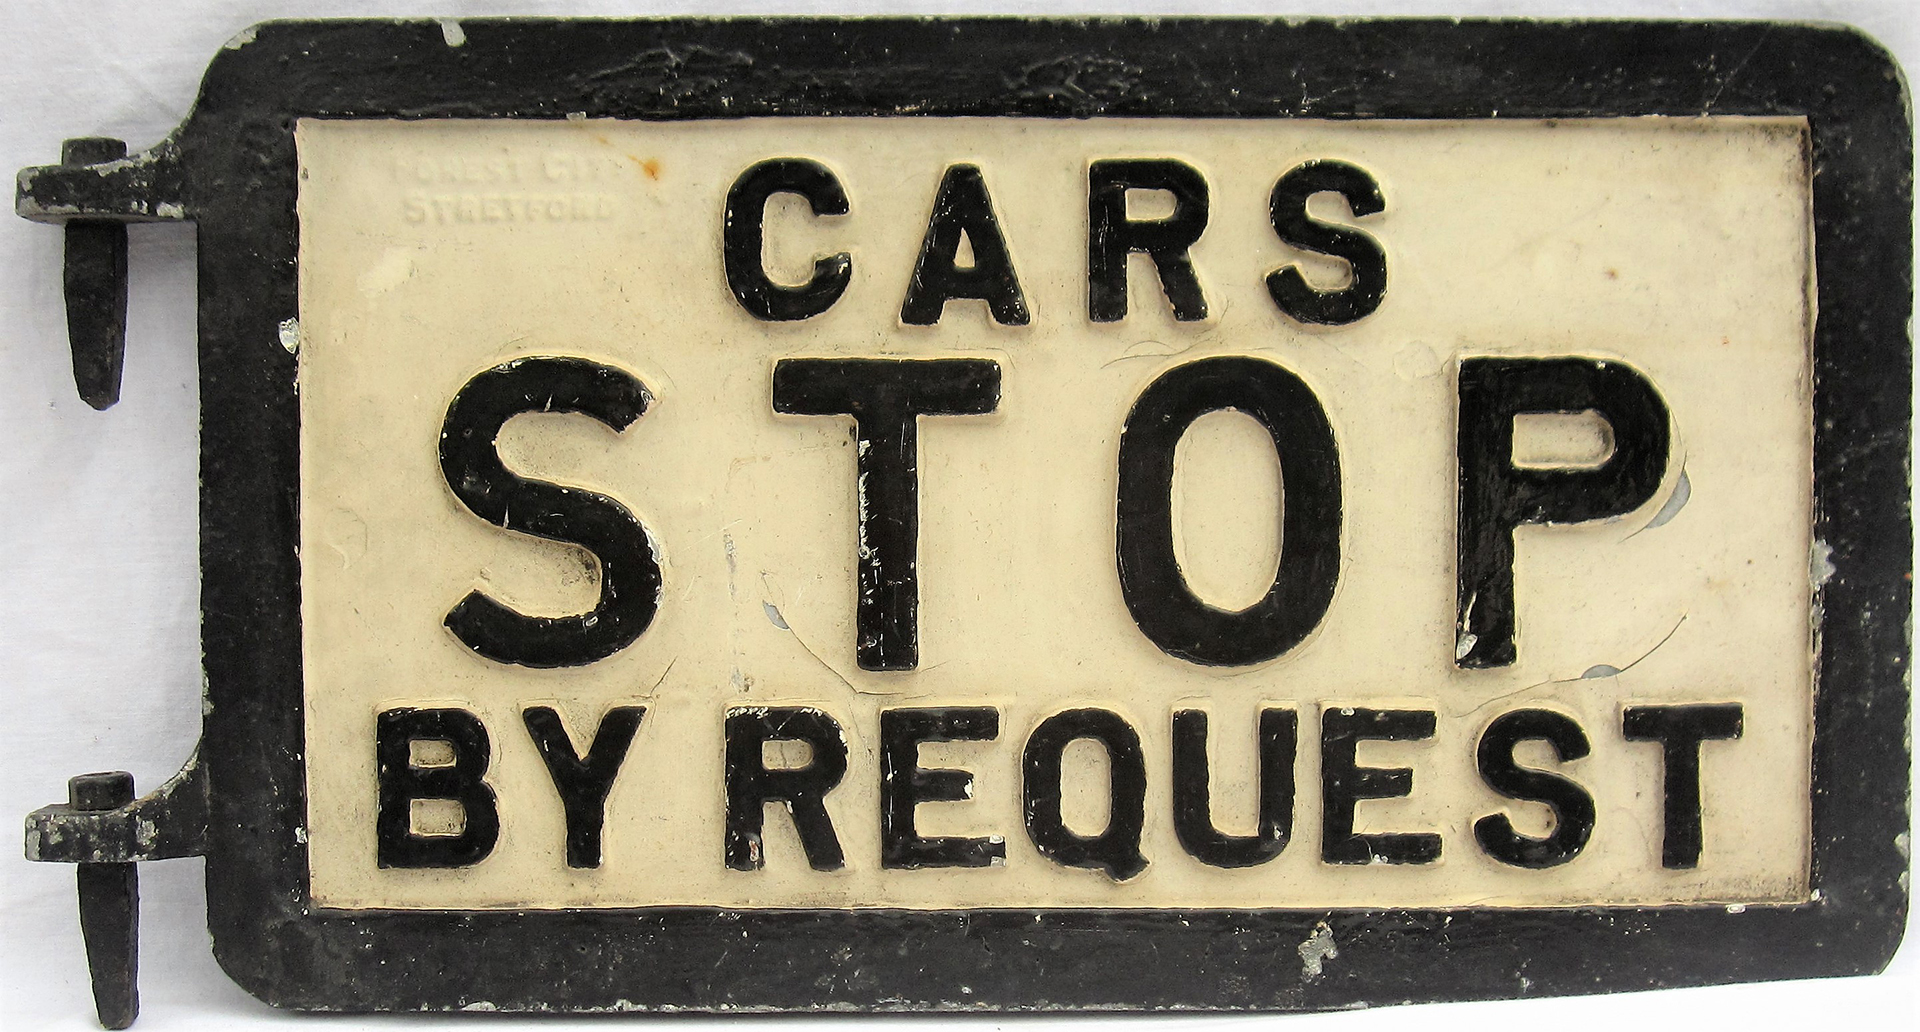 Double sided aluminium hinged Tram Sign. CARS STOP BY REQUEST. Ex Sheffield Tram cars. Measures 21.